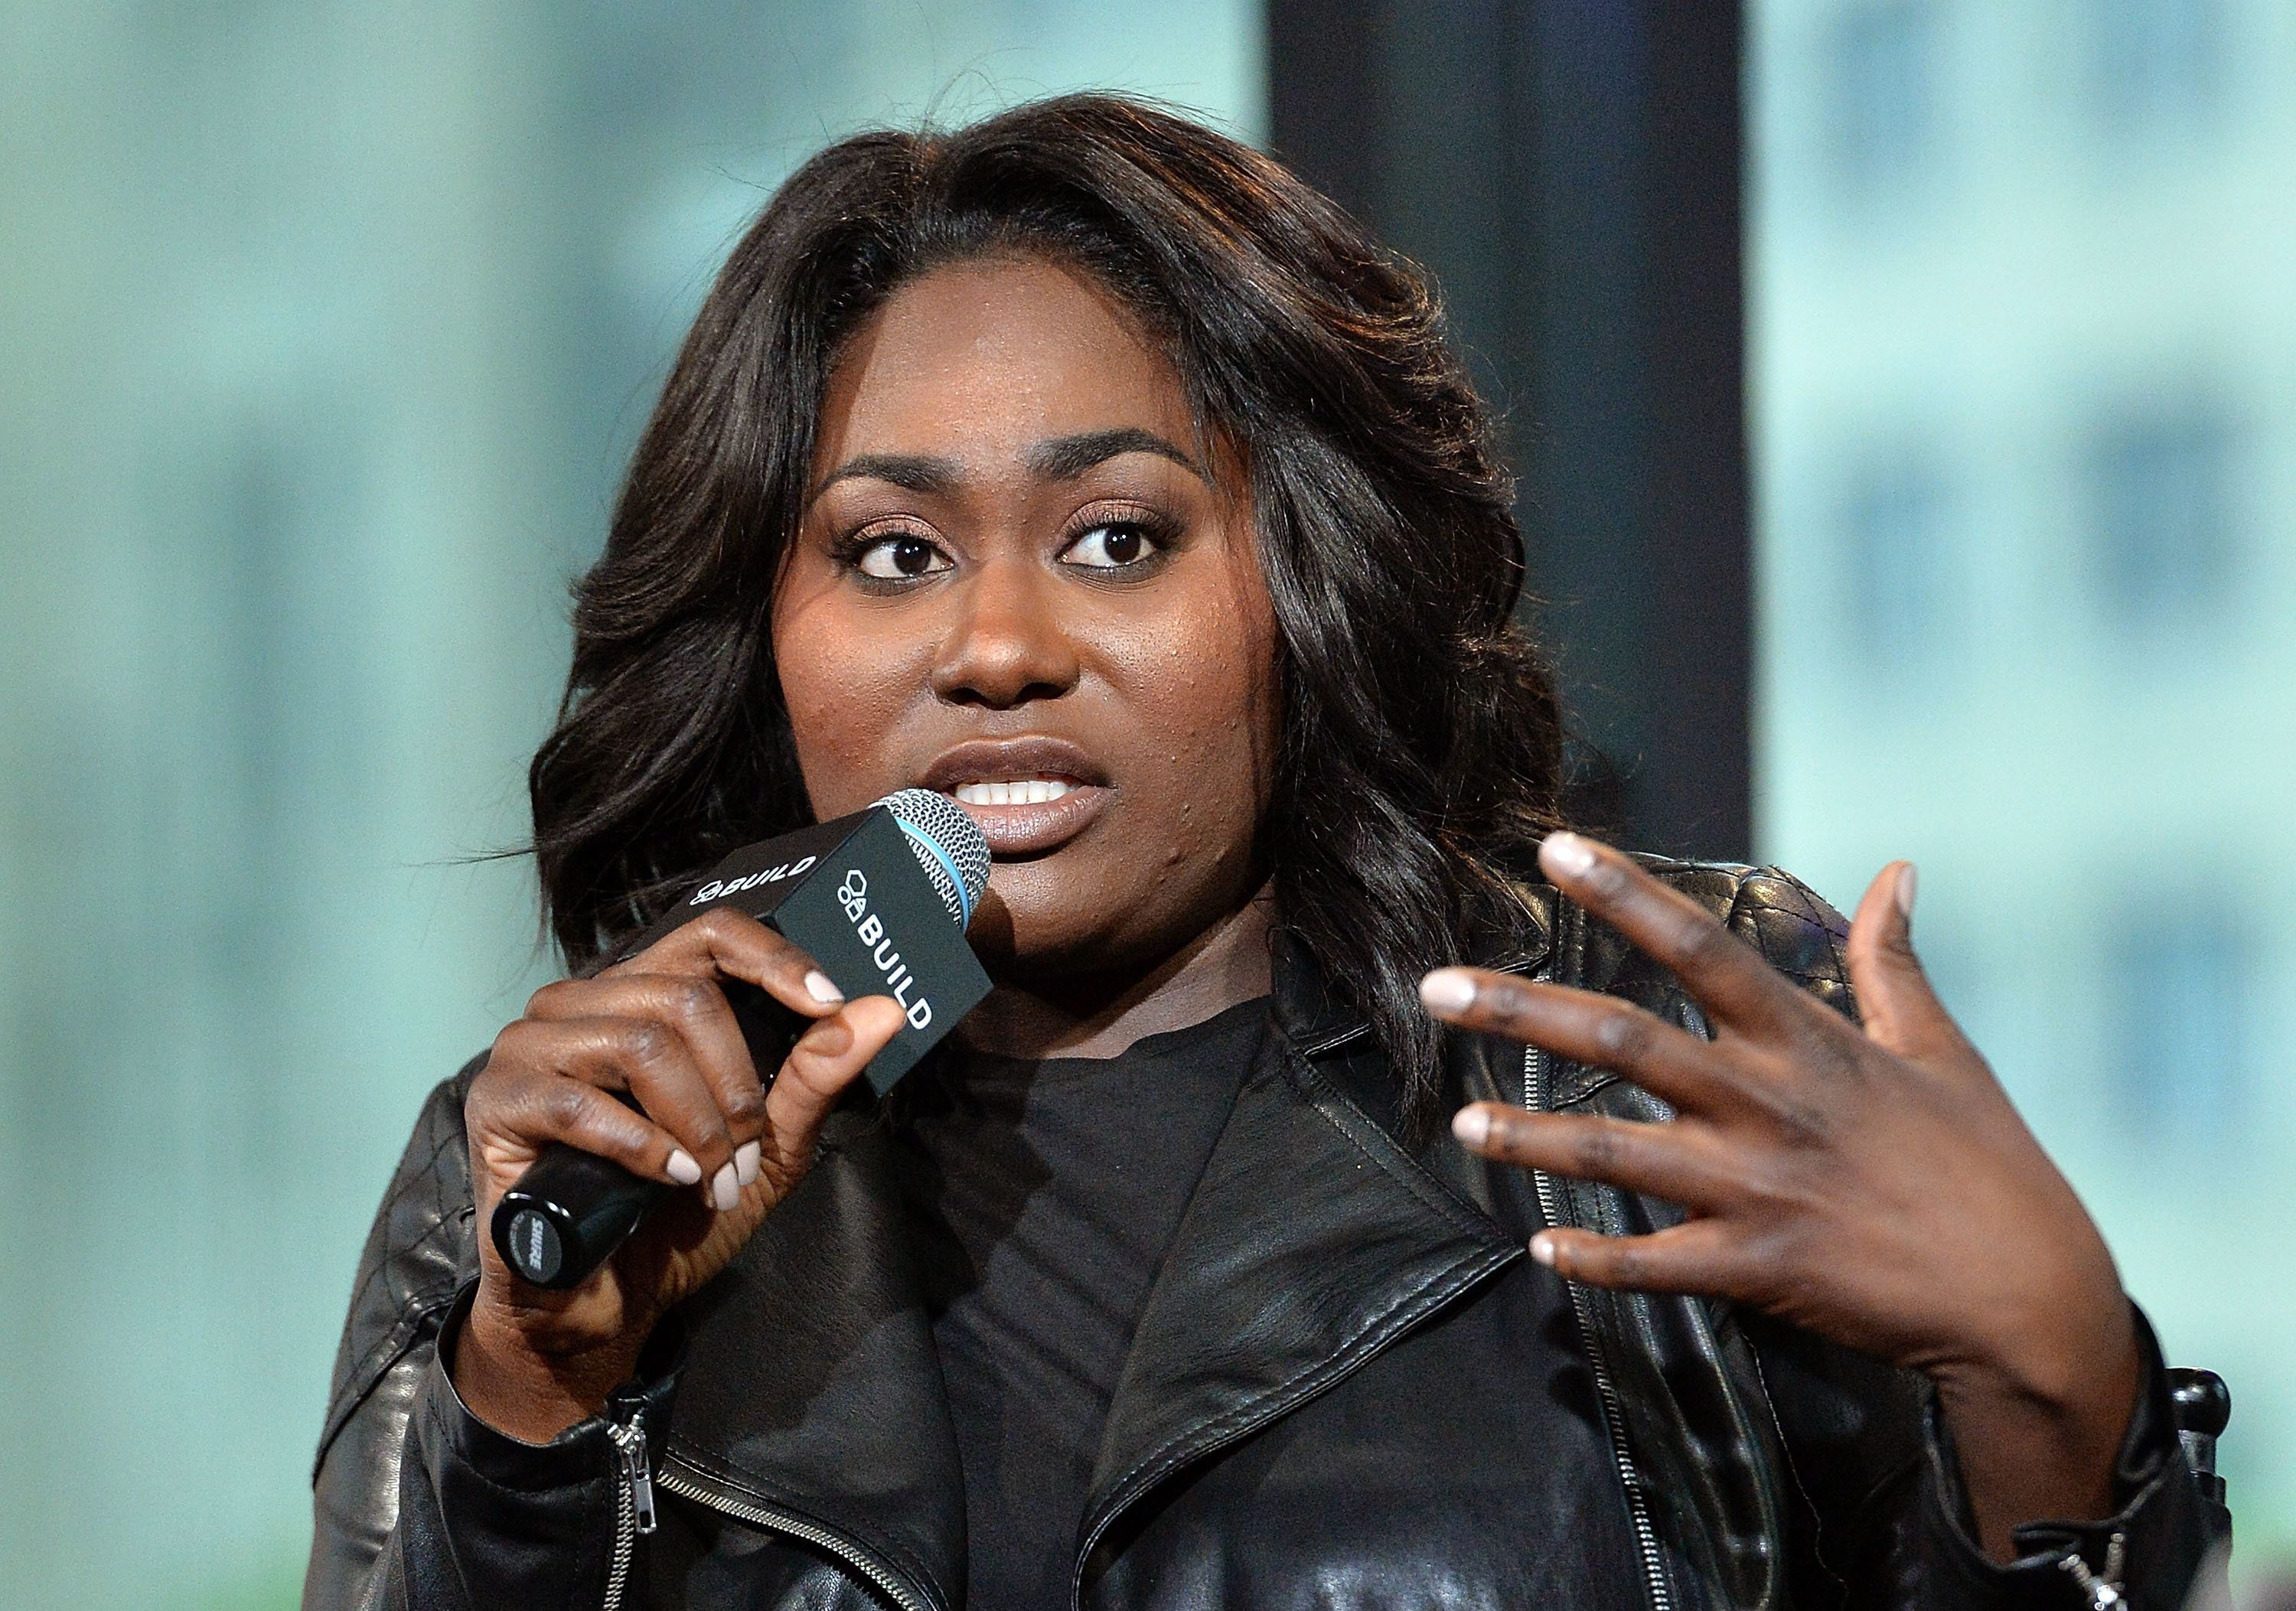 NEW YORK, NY - MAY 10:  Actress Danielle Brooks discusses her role in Broadway's 'The Color Purple' at AOL Build at AOL on May 10, 2016 in New York, New York.  (Photo by Slaven Vlasic/Getty Images)